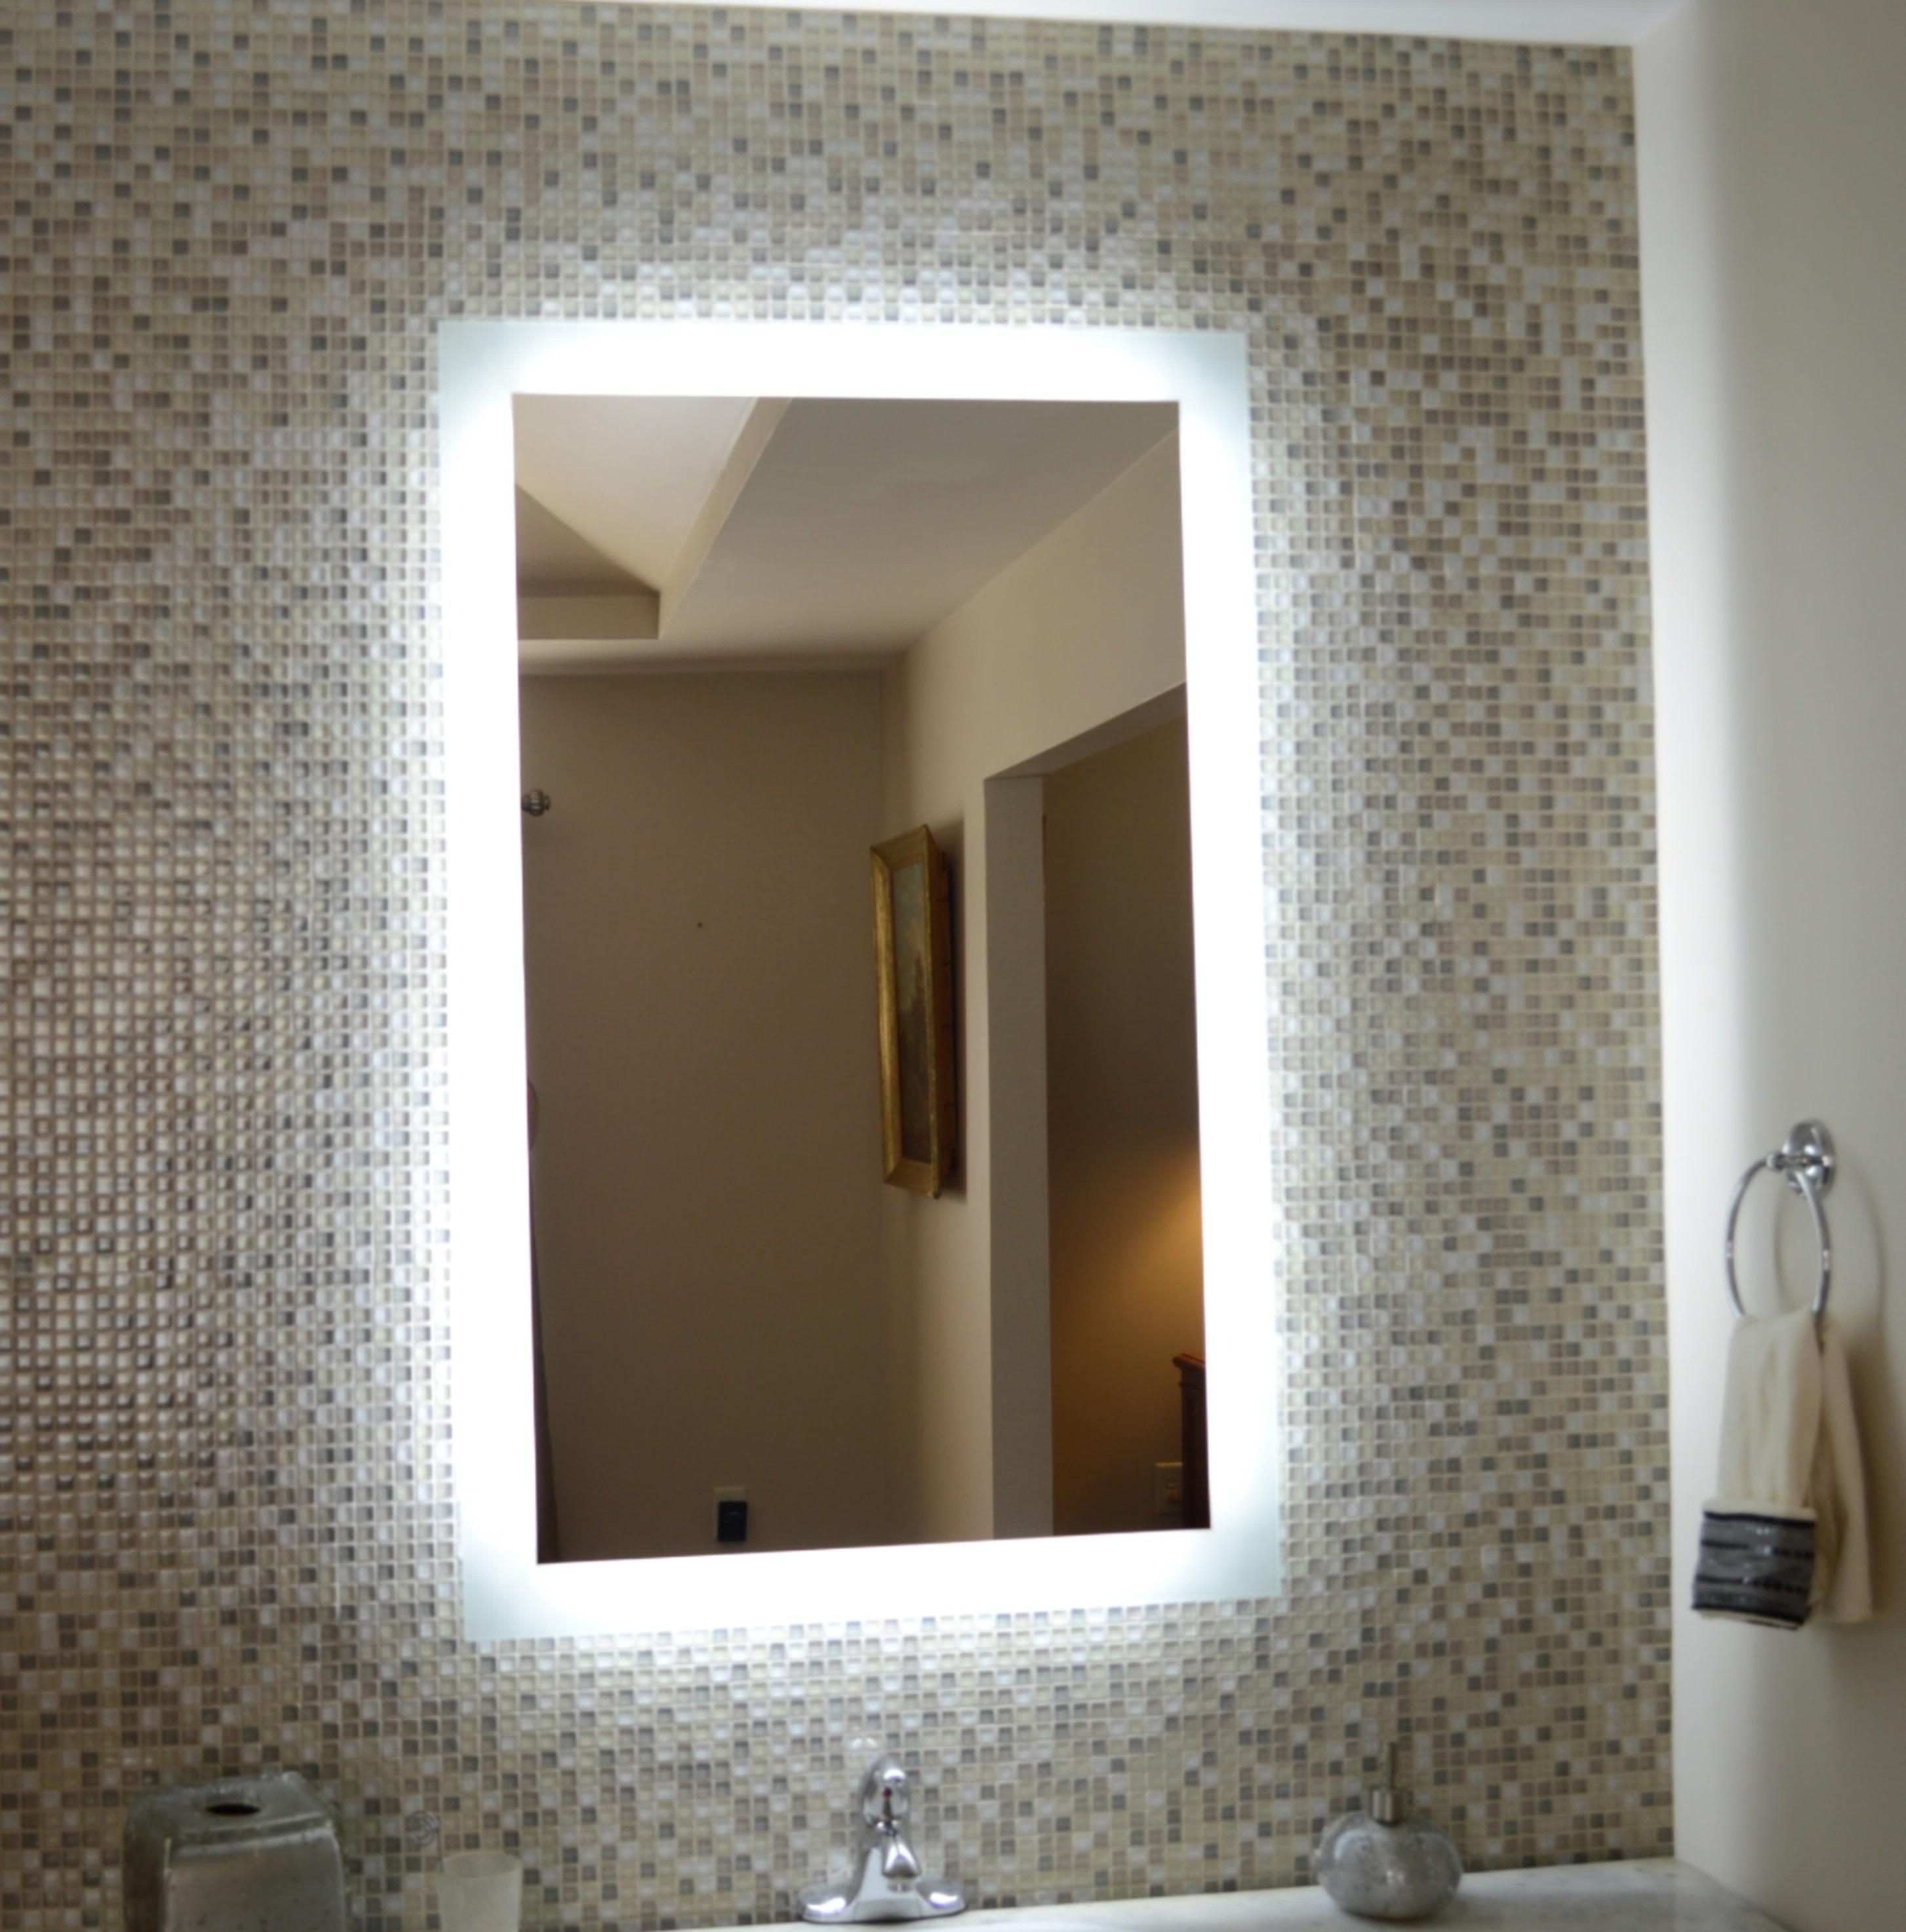 Lighted Vanity Mirror With Regard To Magnifying Vanity Mirrors For Bathroom (View 16 of 20)